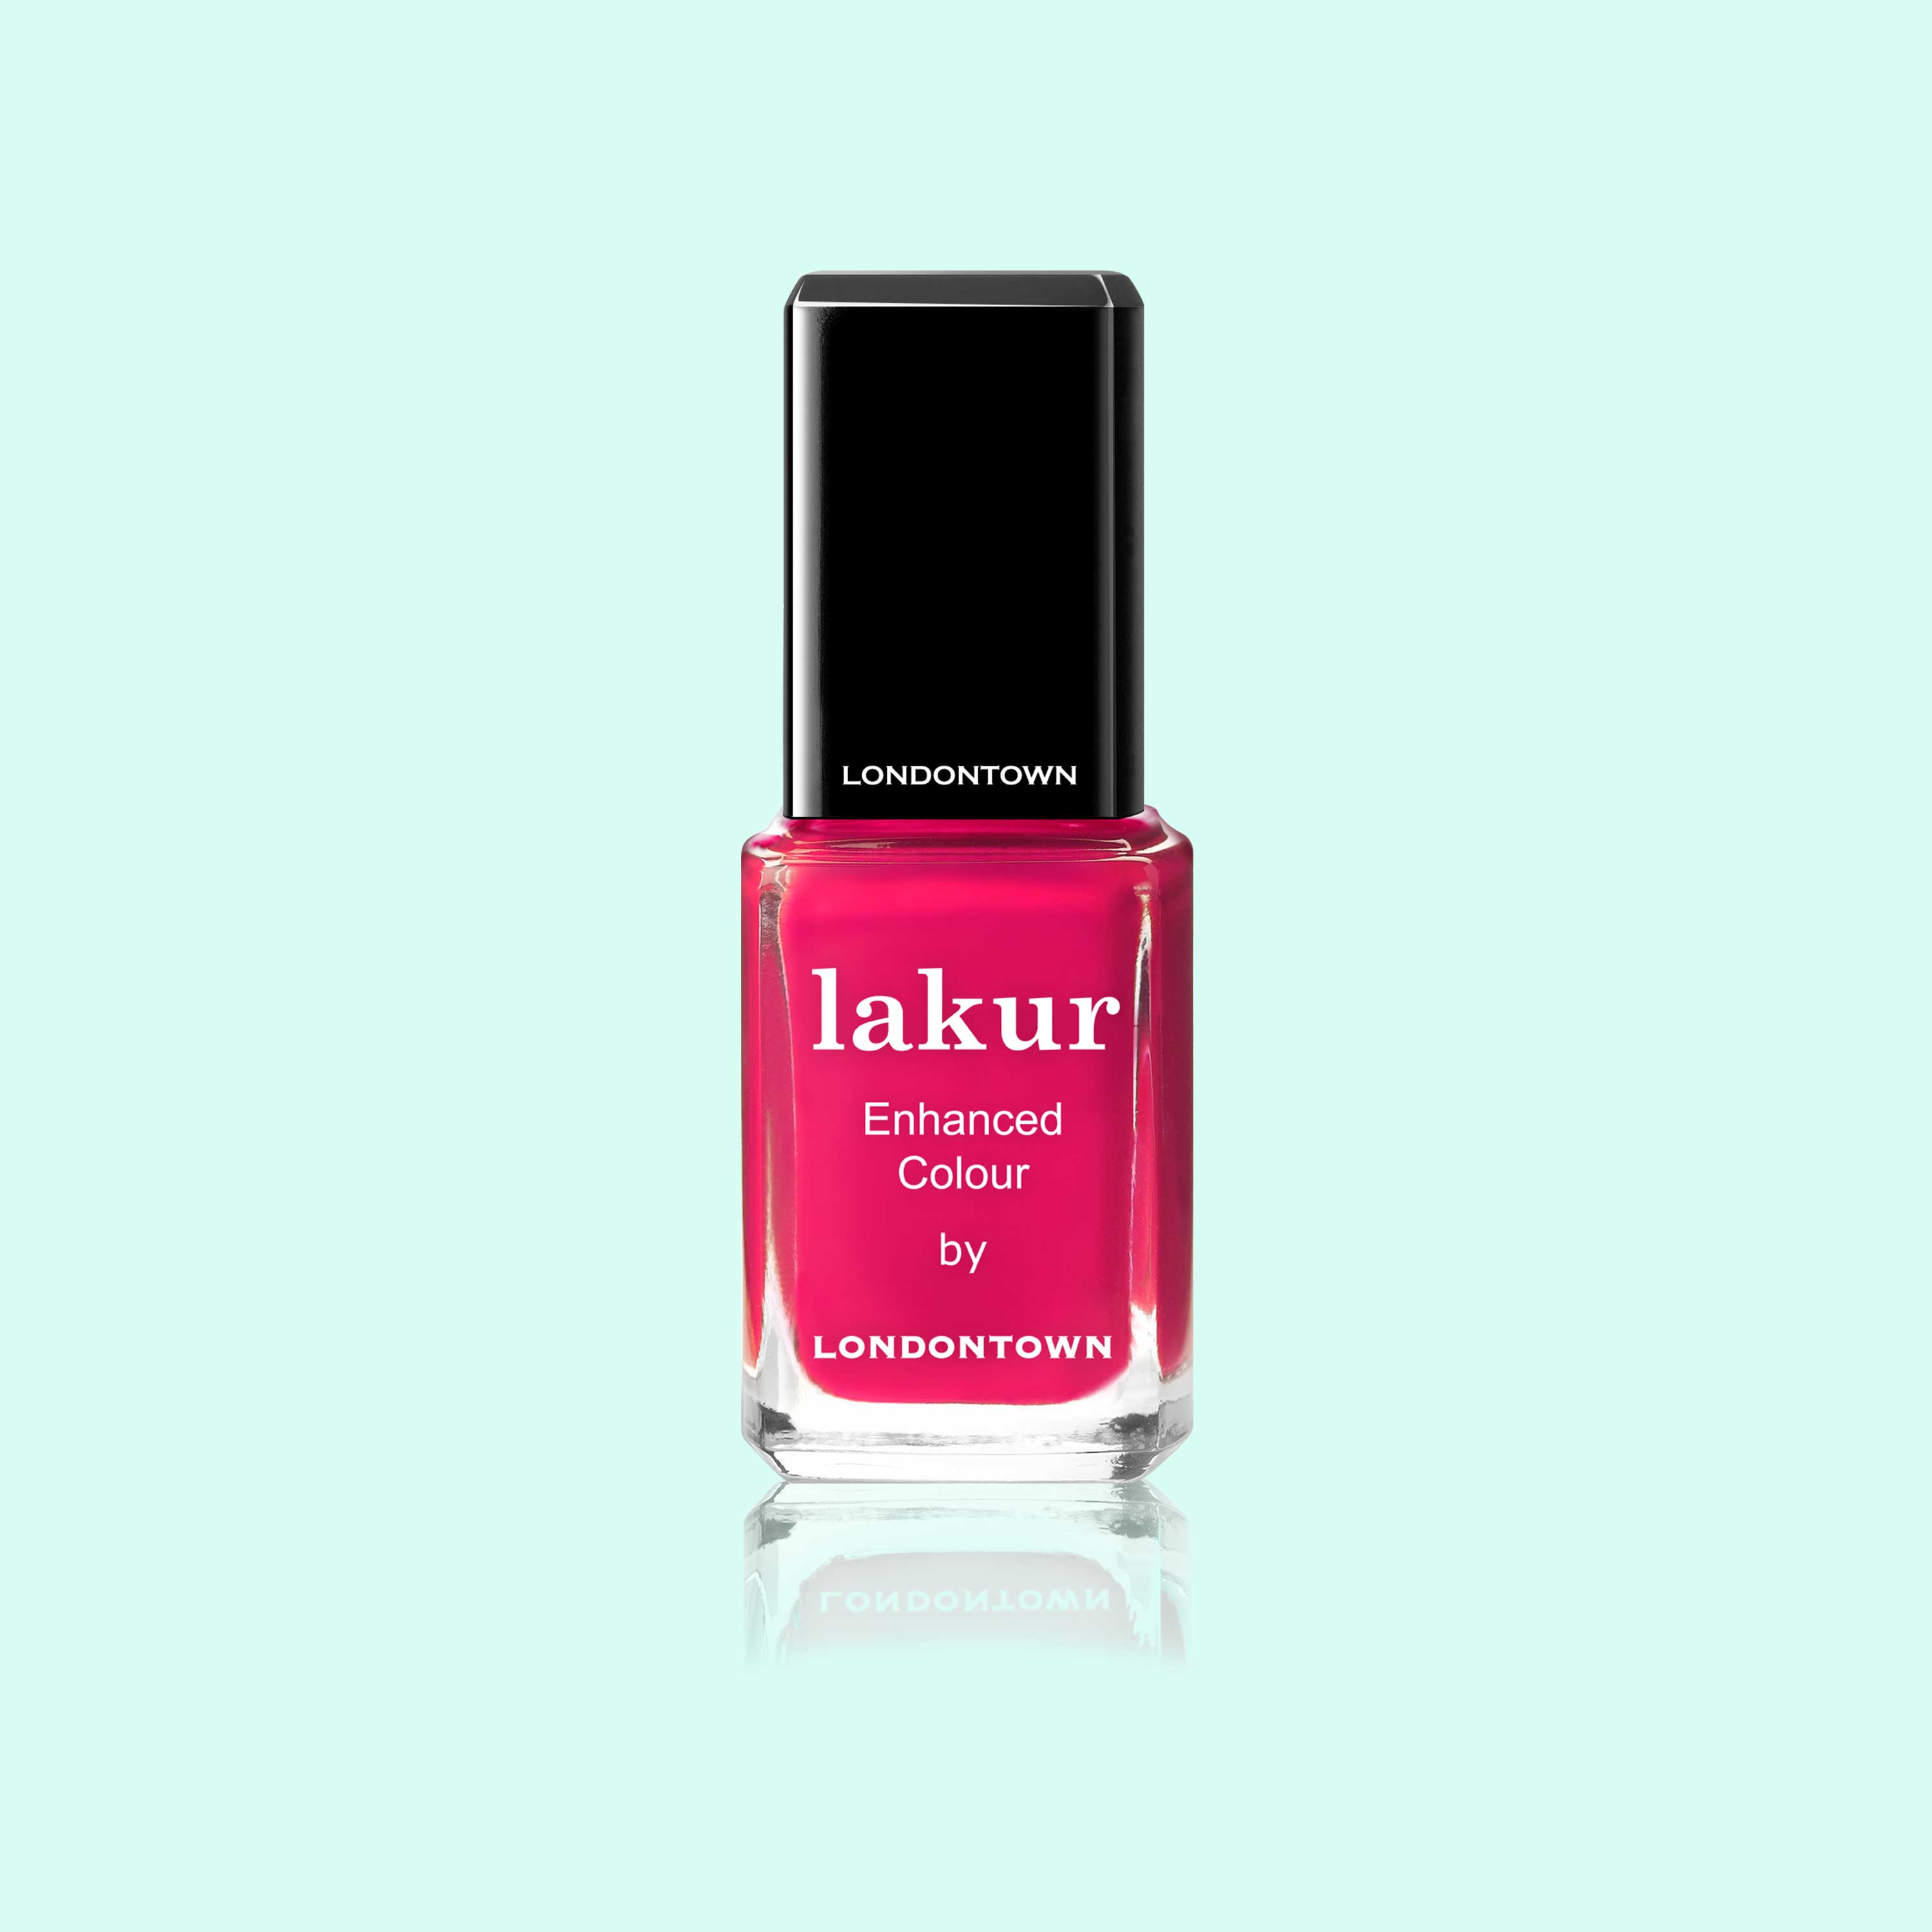 Hottest Nail Polish Colors Totally Changes How Your Hands Look 6